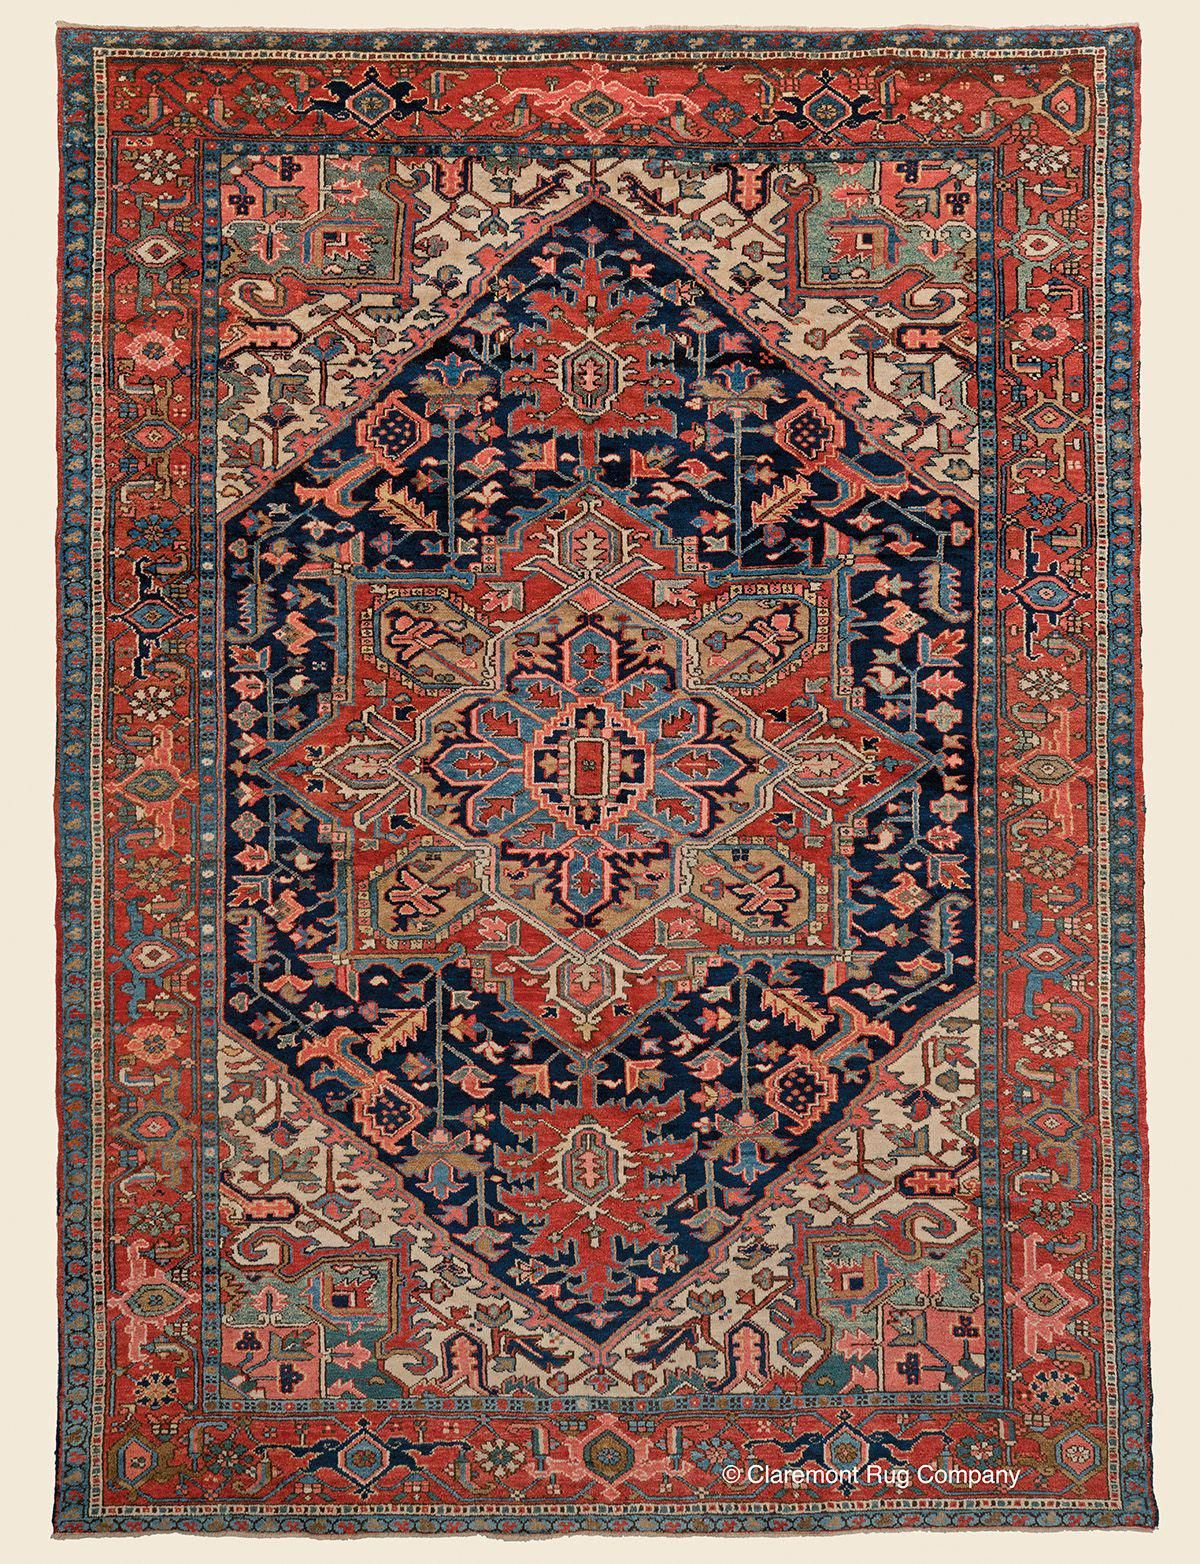 Discount Carpet Runners By The Foot Rugs Claremont Rug Company Rug Company